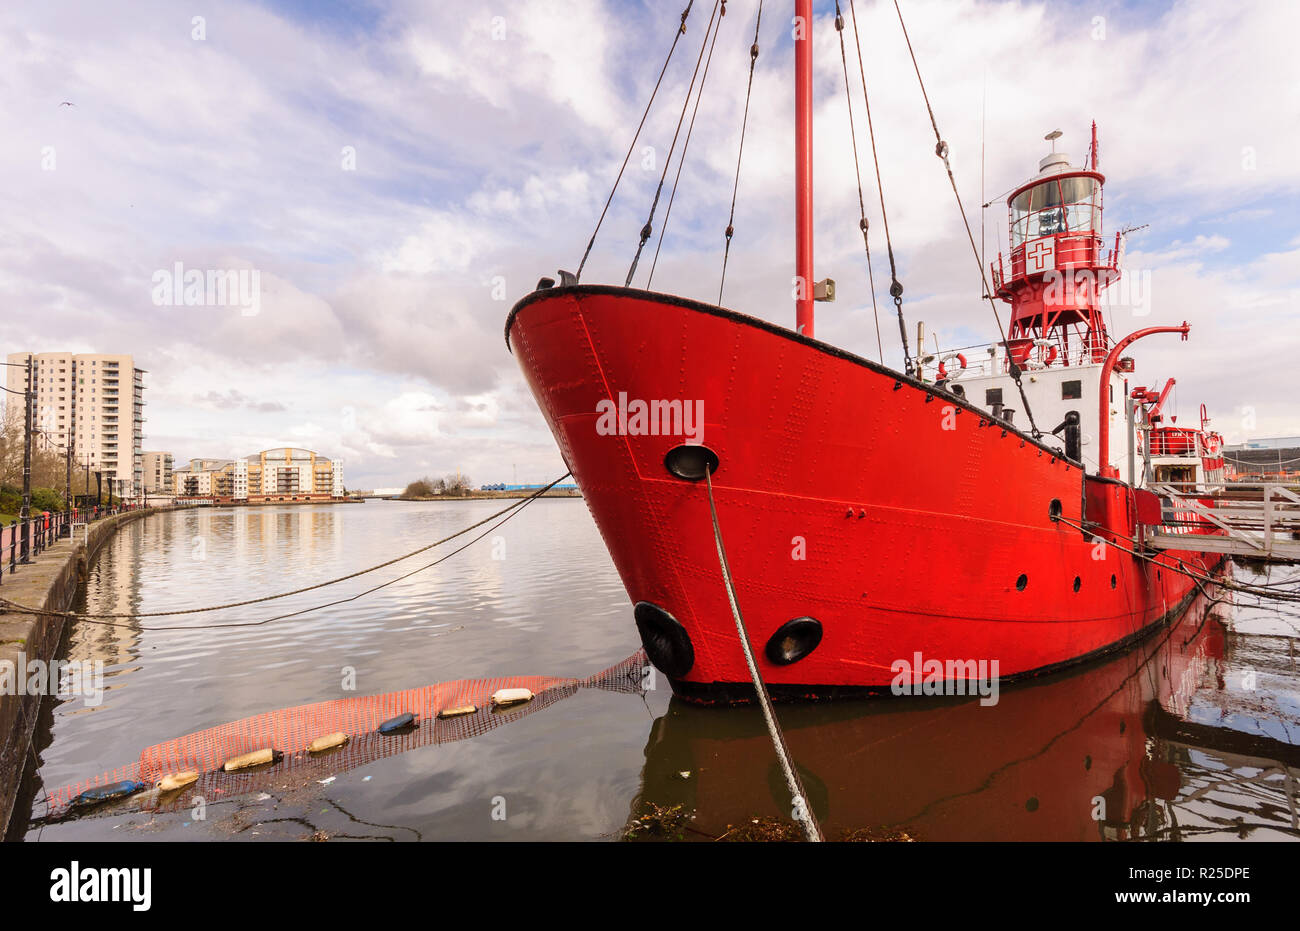 Cardiff, Wales, UK - March 17, 2013: Former Light Vessel 14, now the Lightship 2000 church project, is moored in Roath Basin in the Cardiff Docks, ami Stock Photo